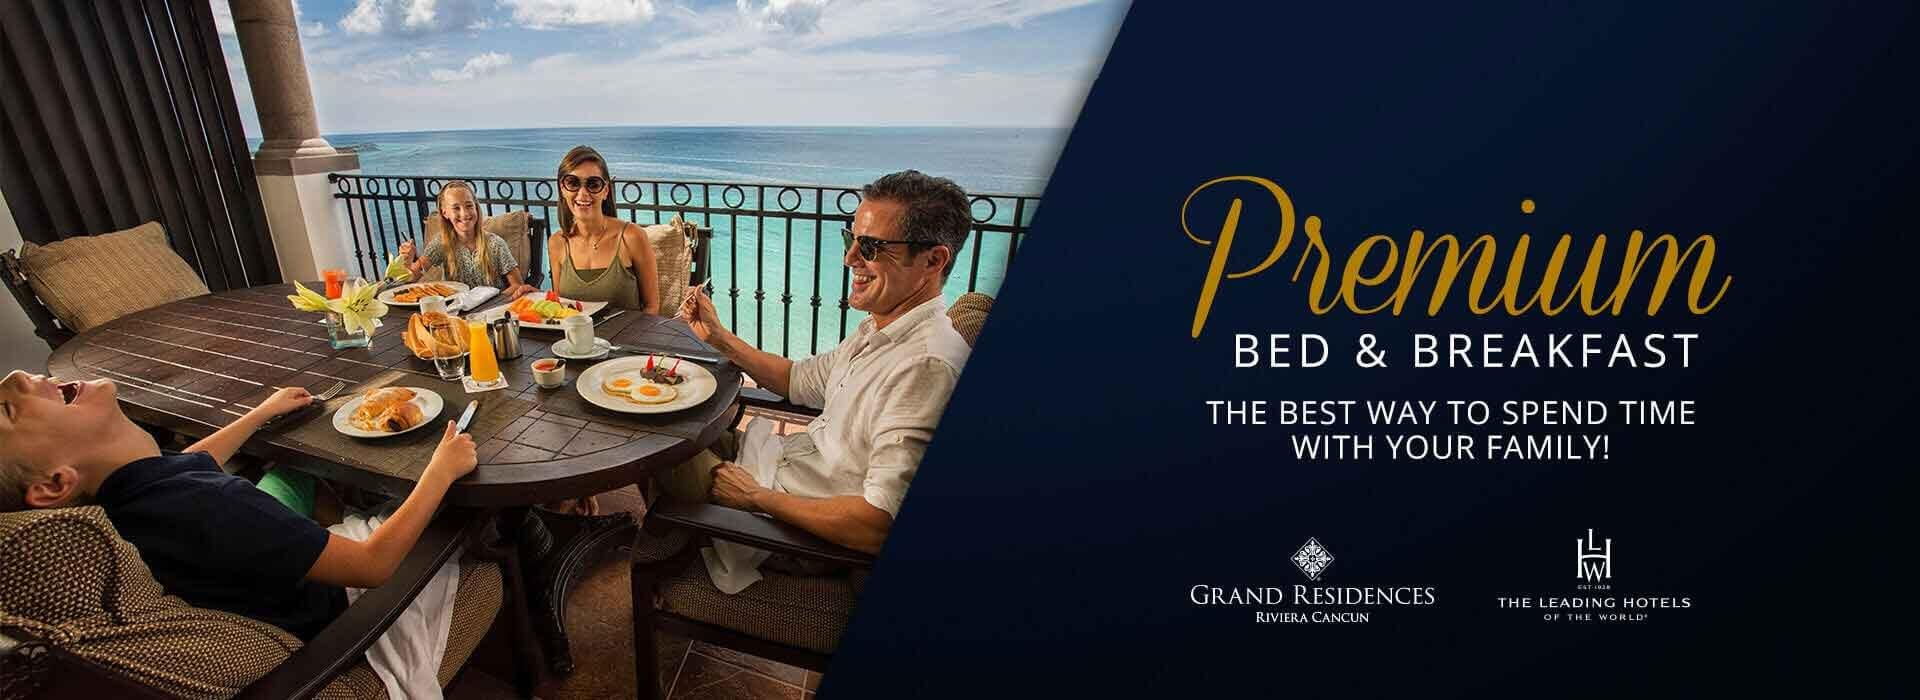 Grand residences bed and breakfast